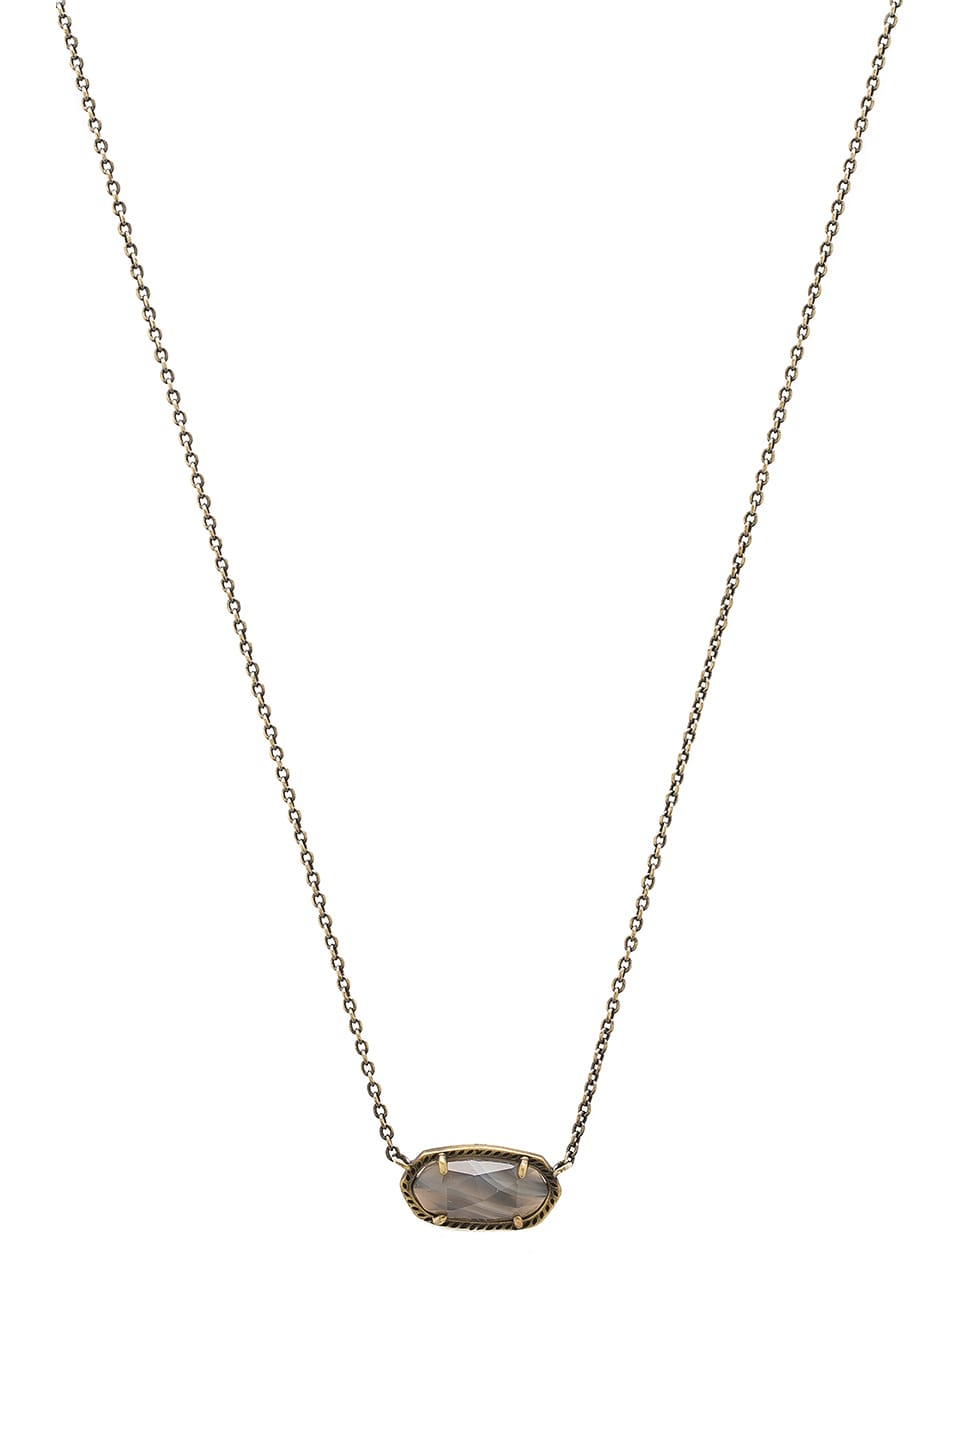 Kendra Scott Elisa Necklace in Antique Brass & White Banded Agate